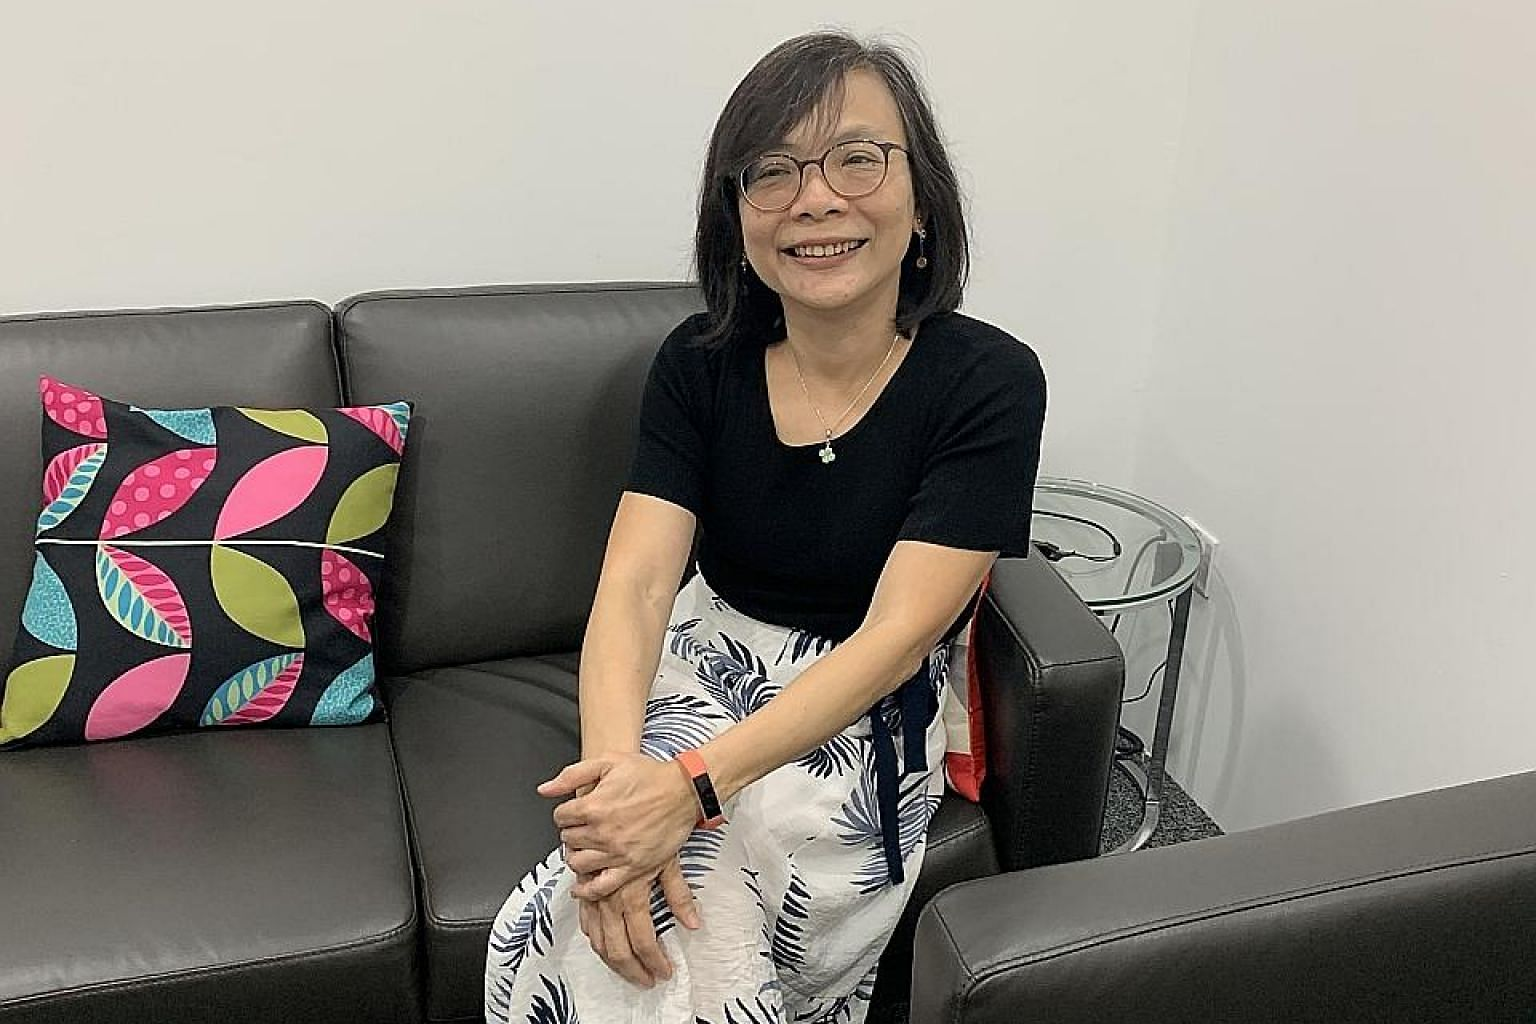 """Ms Emily Ong, seen here at the Alzheimer's Disease Association in late March, was diagnosed with young onset dementia about two years ago at the age of 51. She said her diagnosis was a relief: """"It helps you to better understand yourself. You don't ha"""